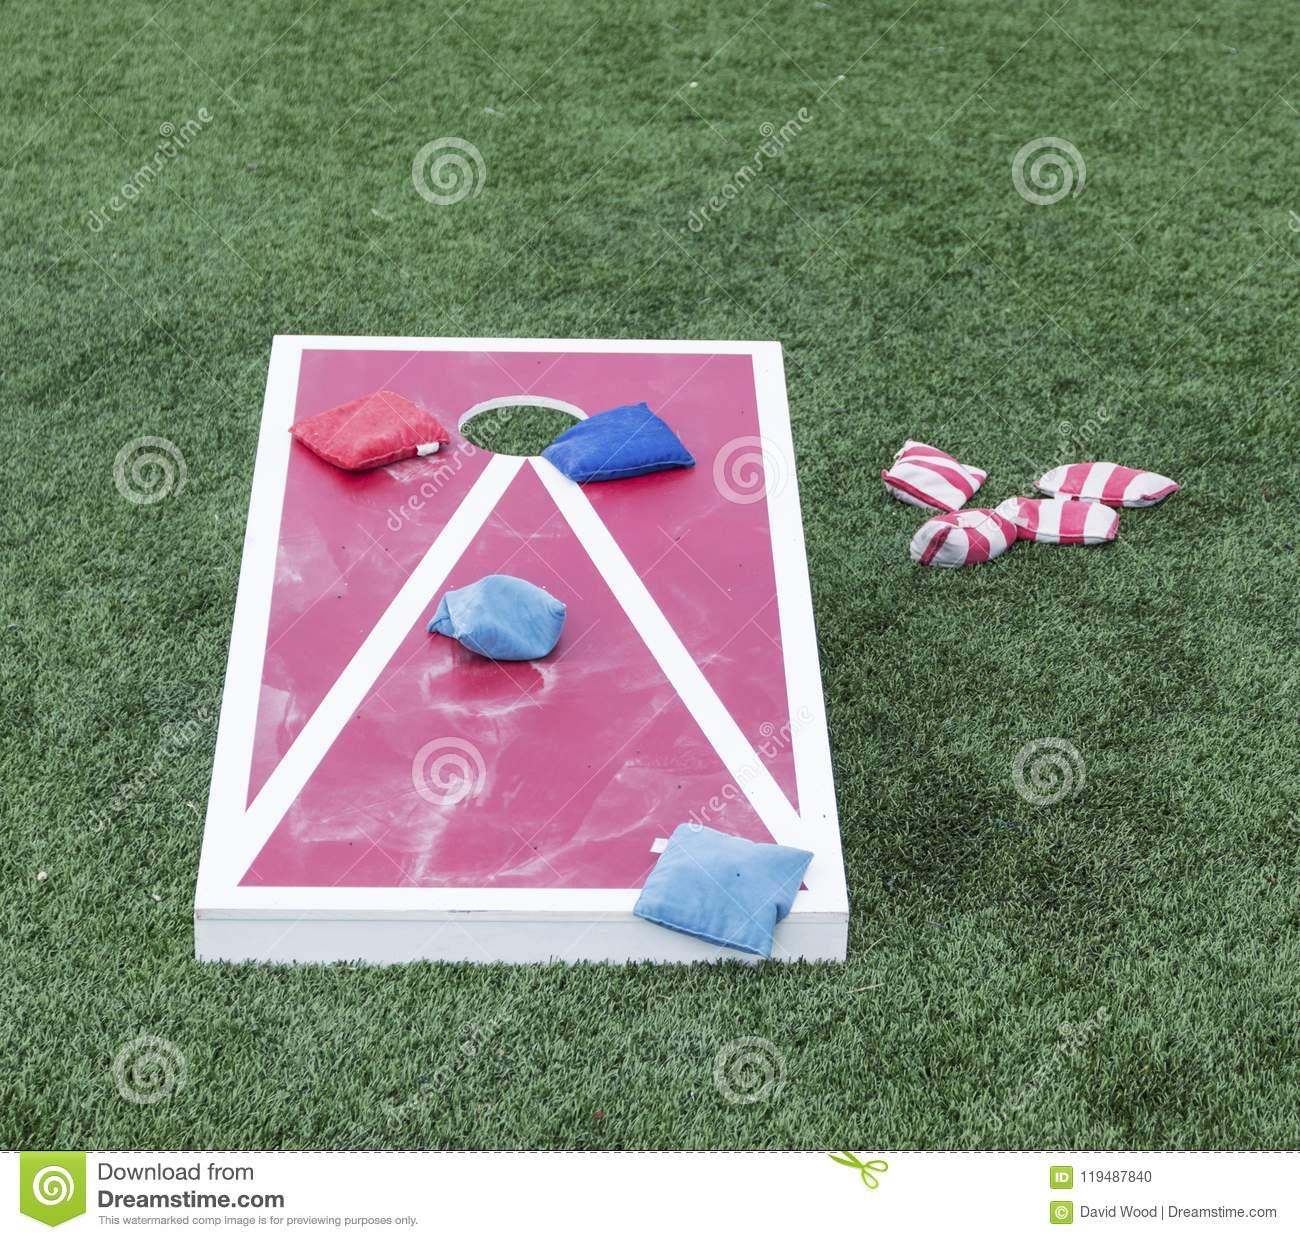 Red and white cornhole game